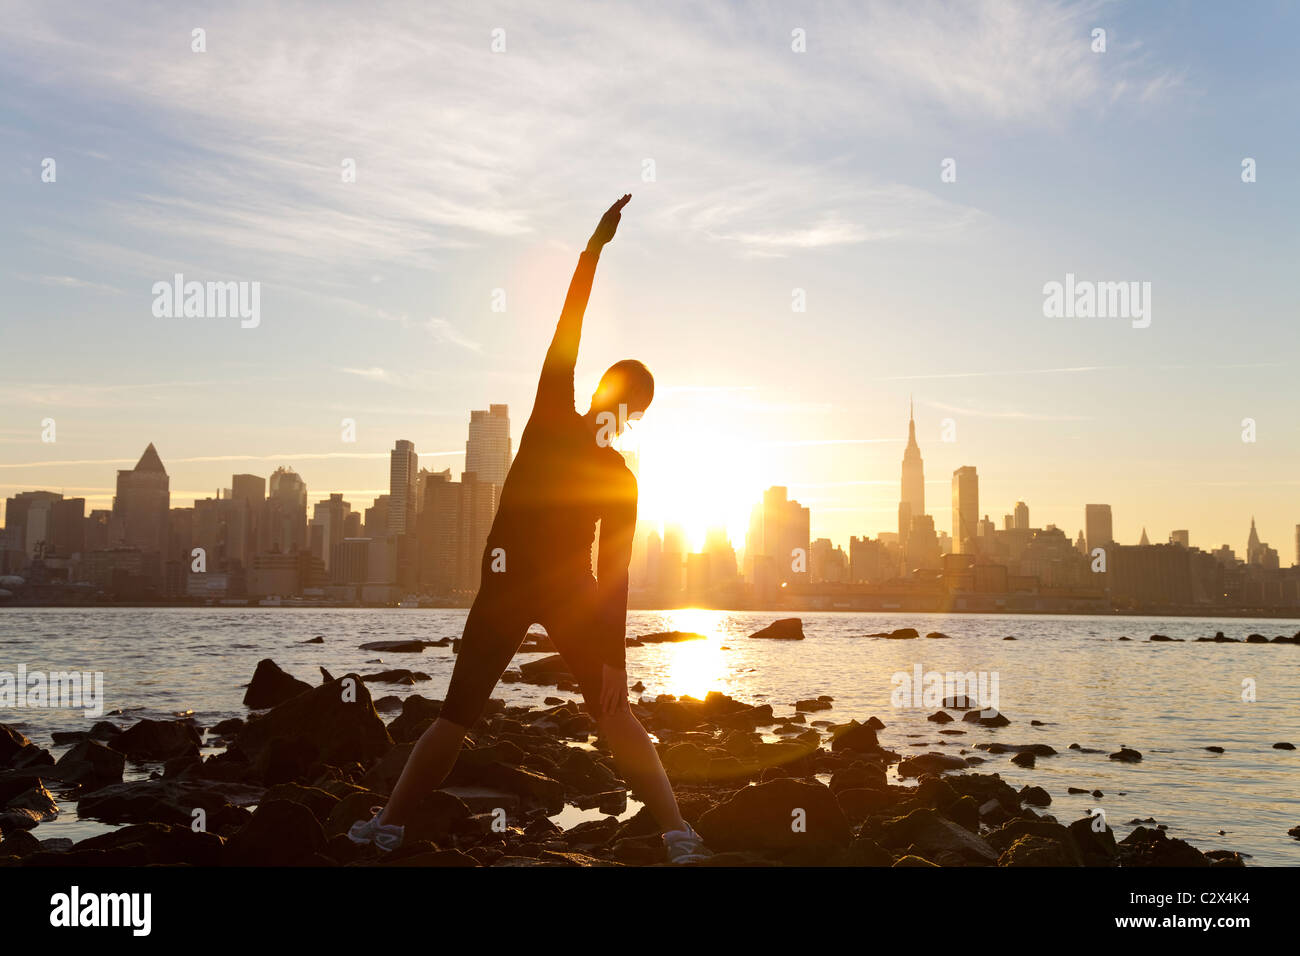 A woman runner stretching in a yoga position in front of the Manhattan skyline, New York City, USA, at dawn sunrise. Stock Photo